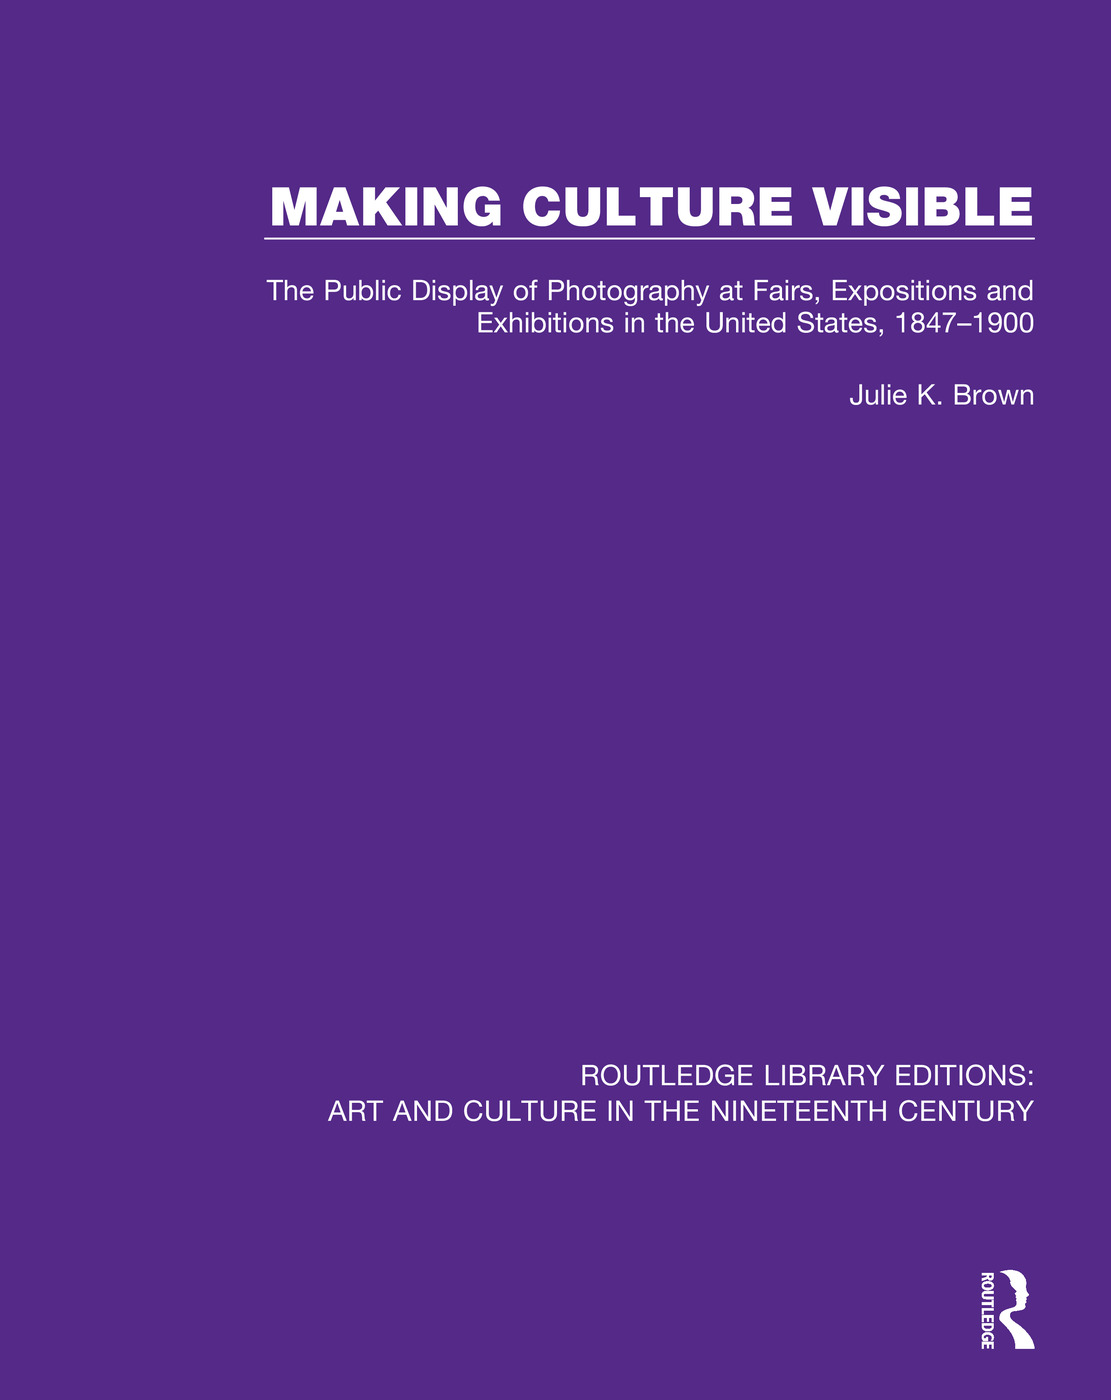 Making Culture Visible: The Public Display of Photography at Fairs, Expositions and Exhibitions in the United States, 1847-1900 book cover